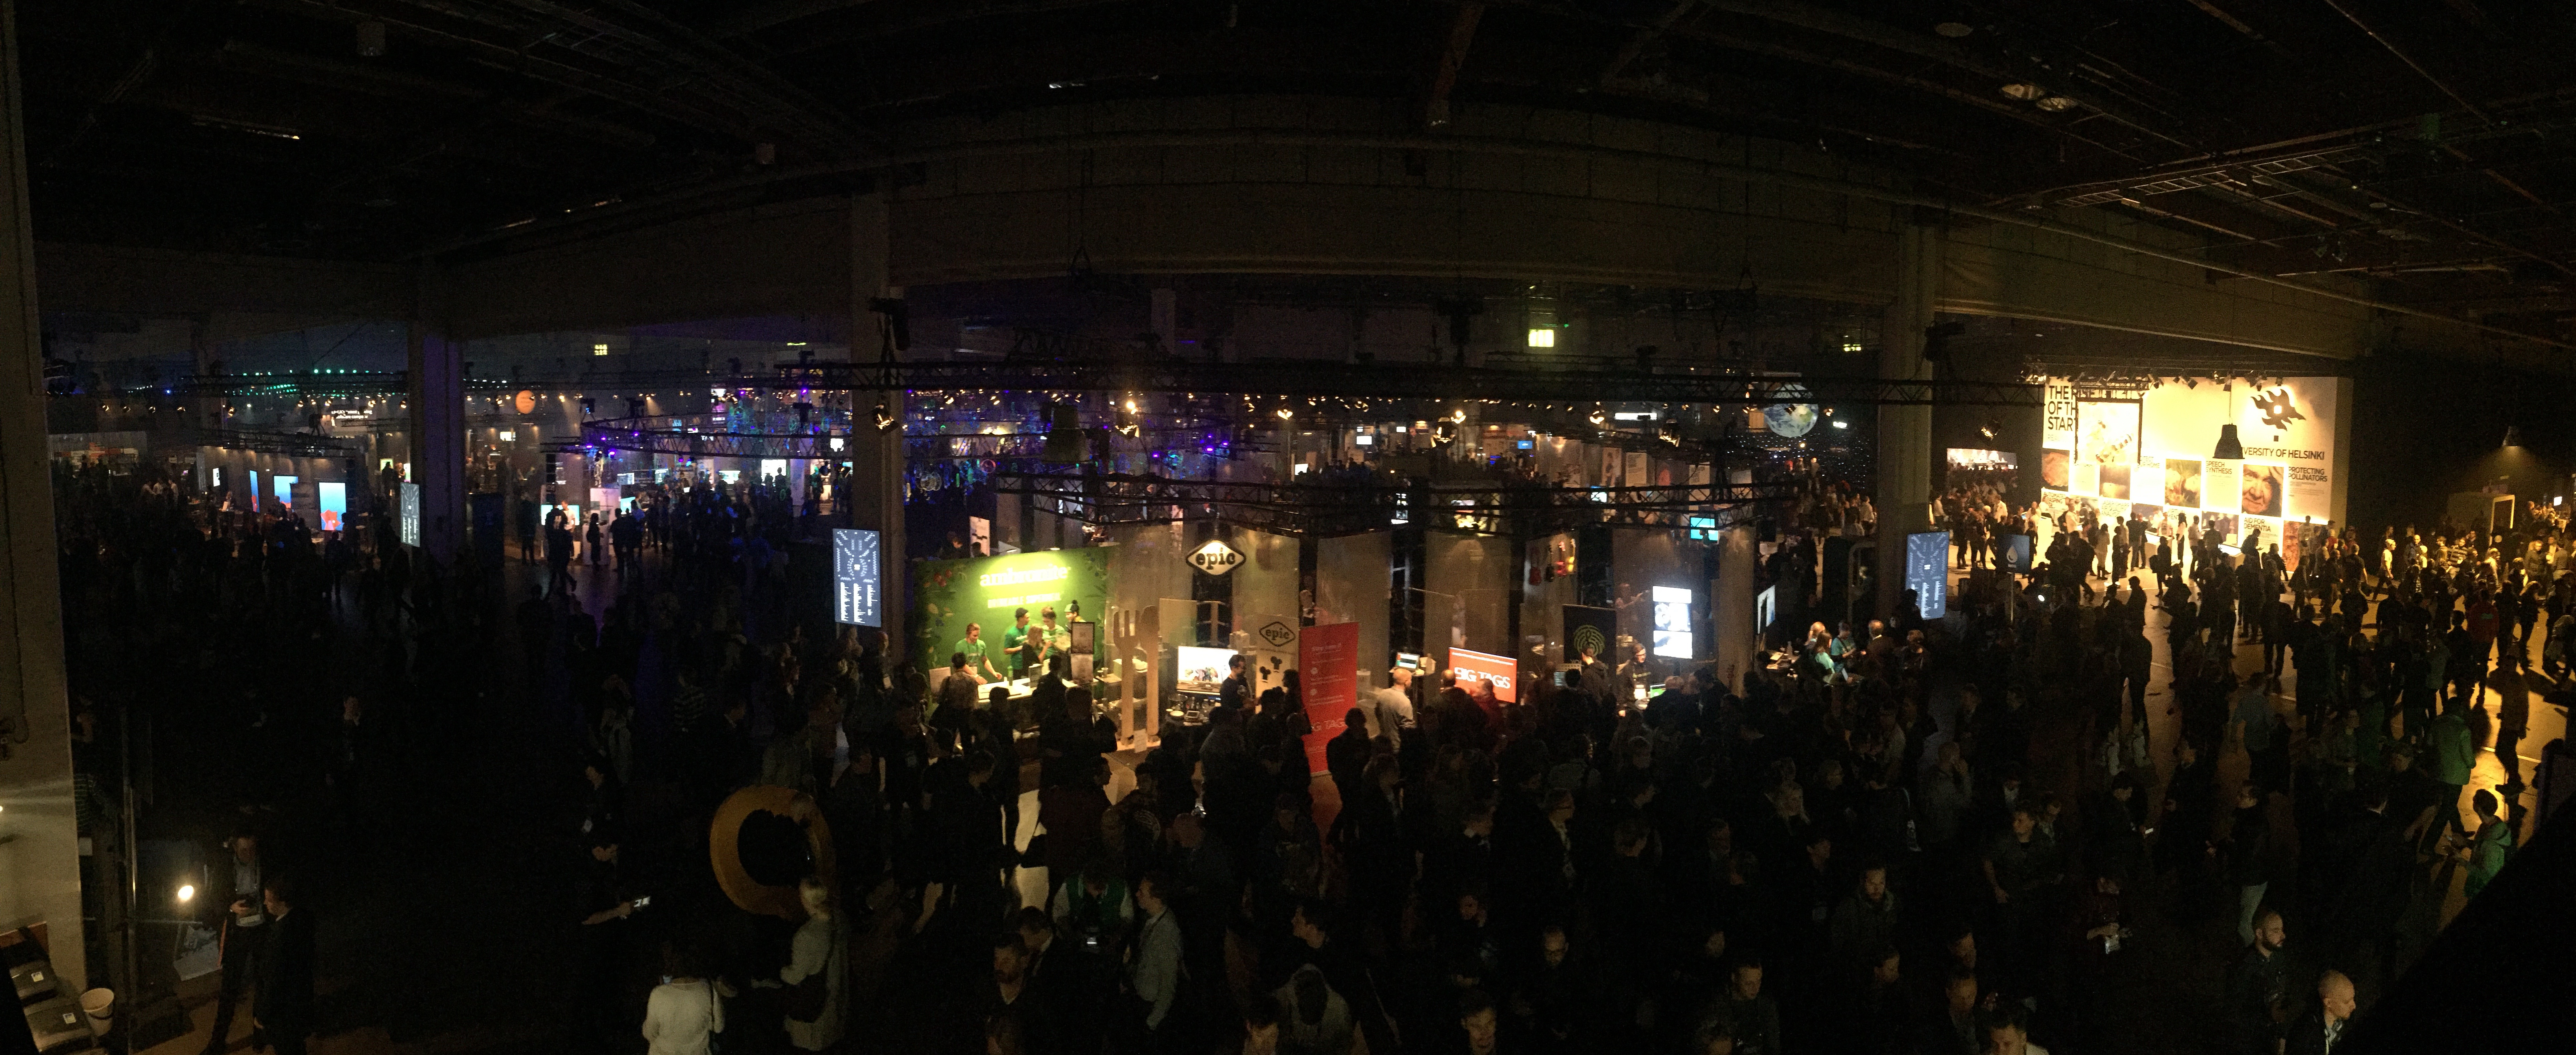 View of attendees at Slush conference